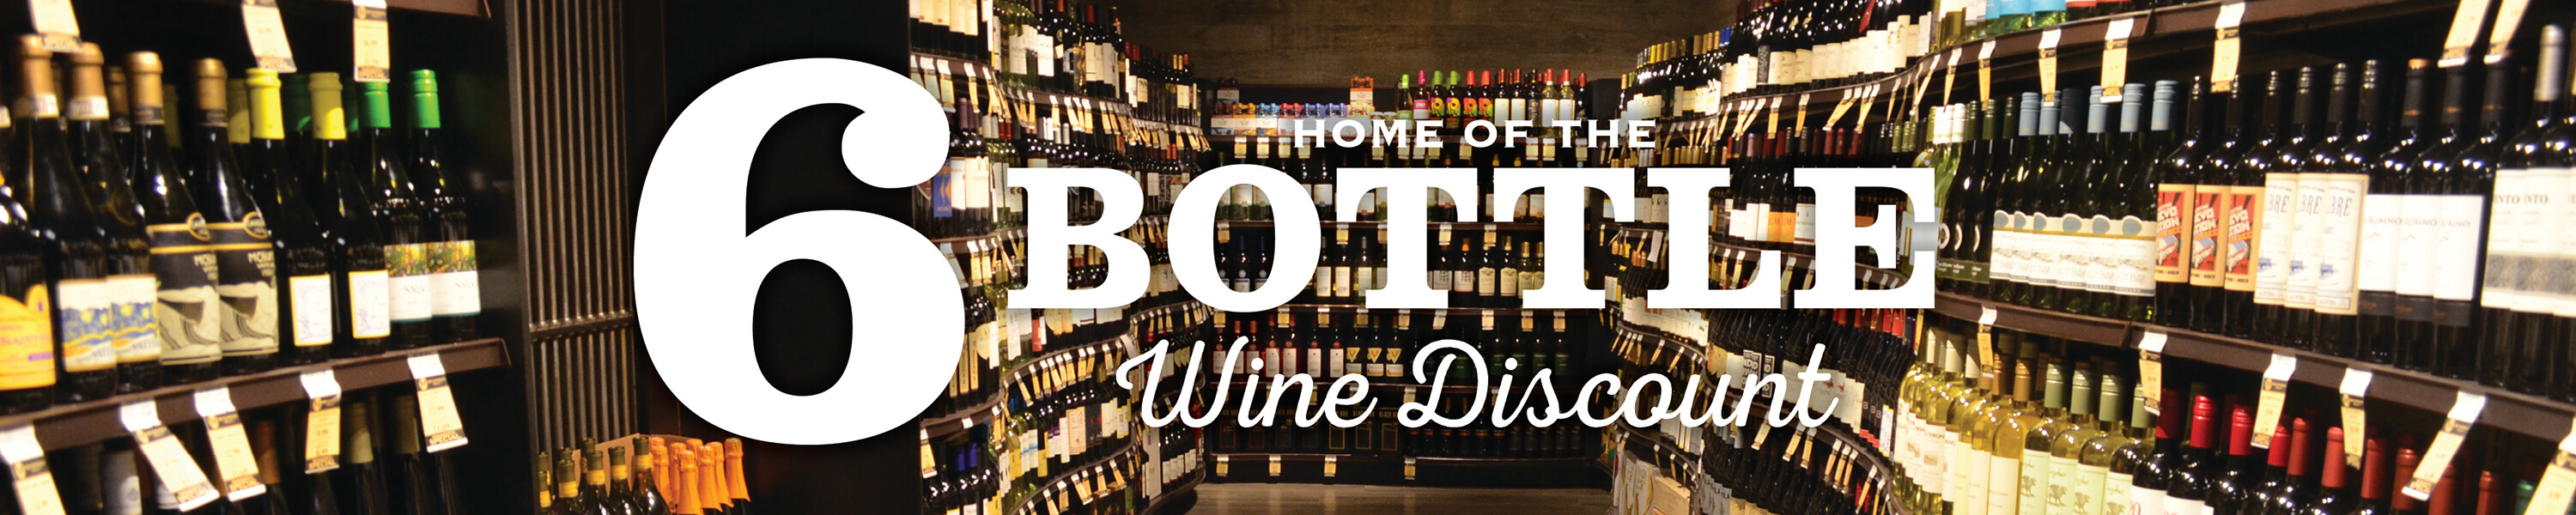 6 Bottle Wine Discount